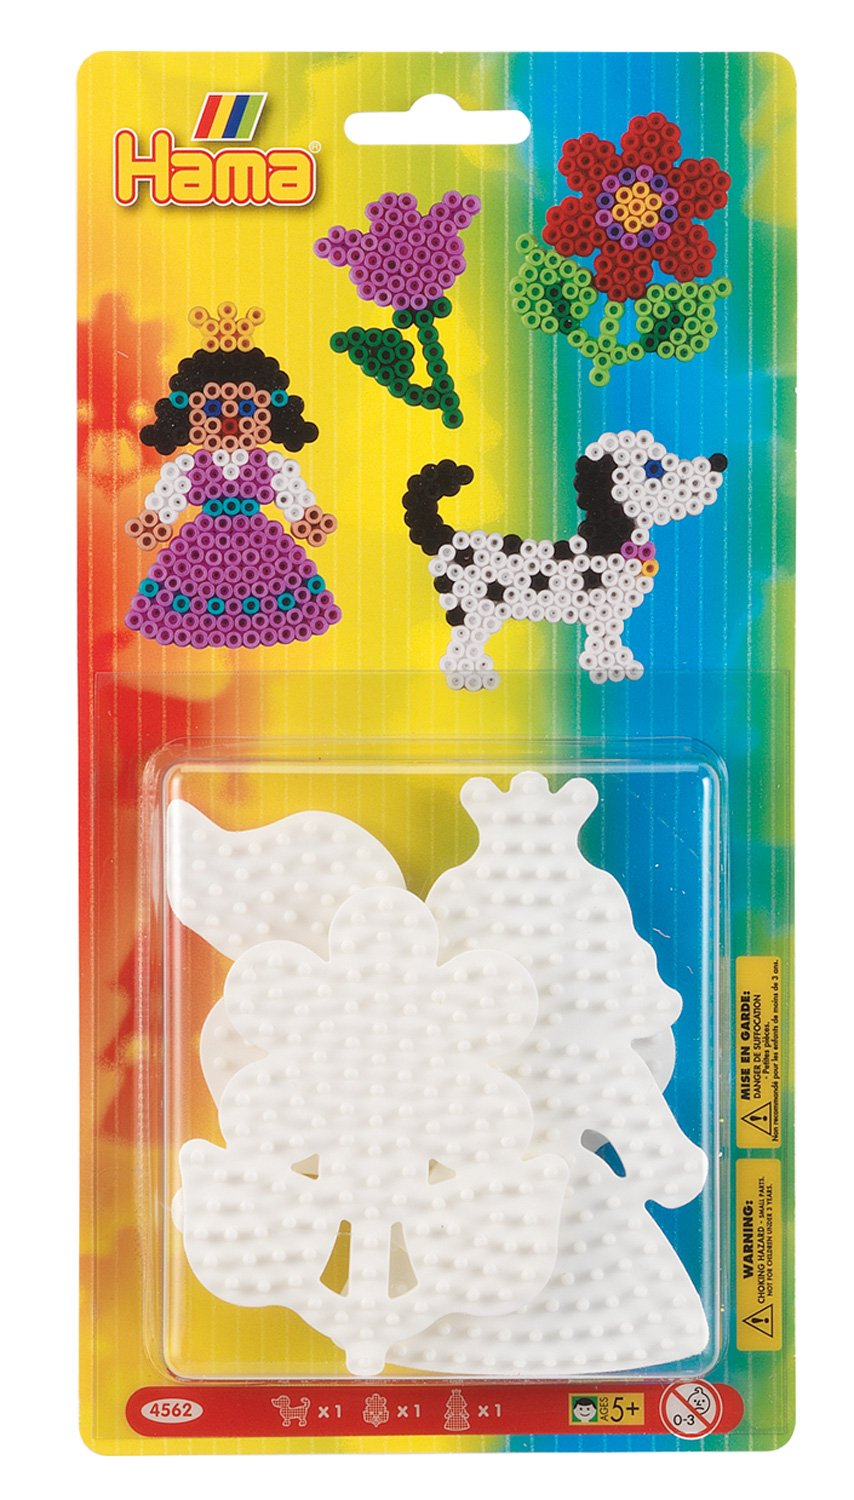 Flower and Princess Hama 4562/Pen Board Small Assorted Dog